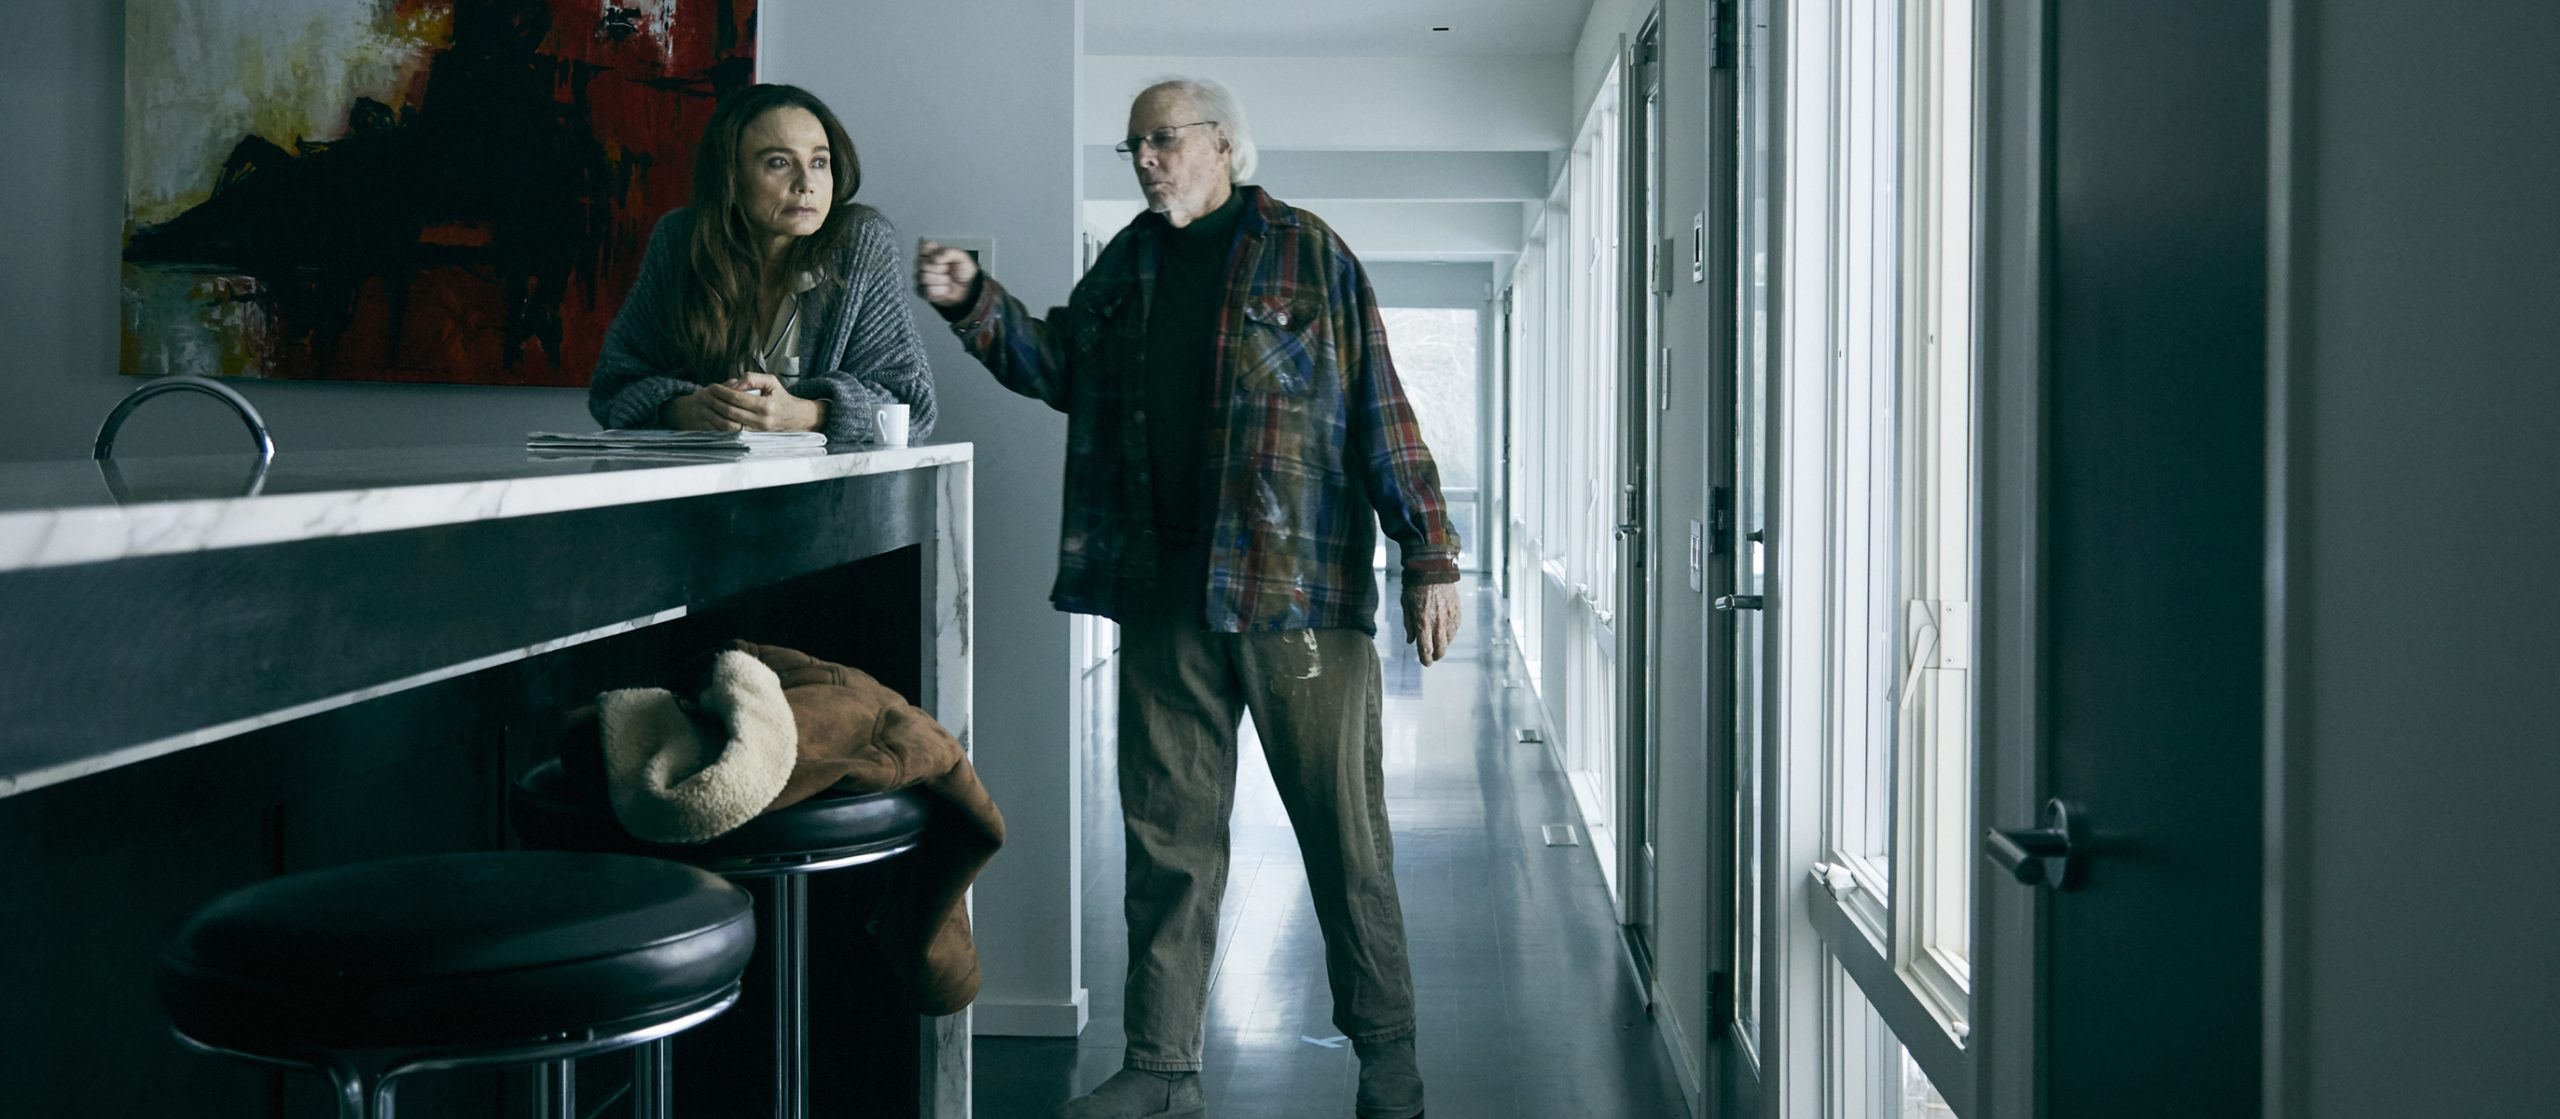 Claire (Lena Olin) and Richard (Bruce Dern) in their morning routine in THE ARTIST'S WIFE. Photo by Michael Lavine.